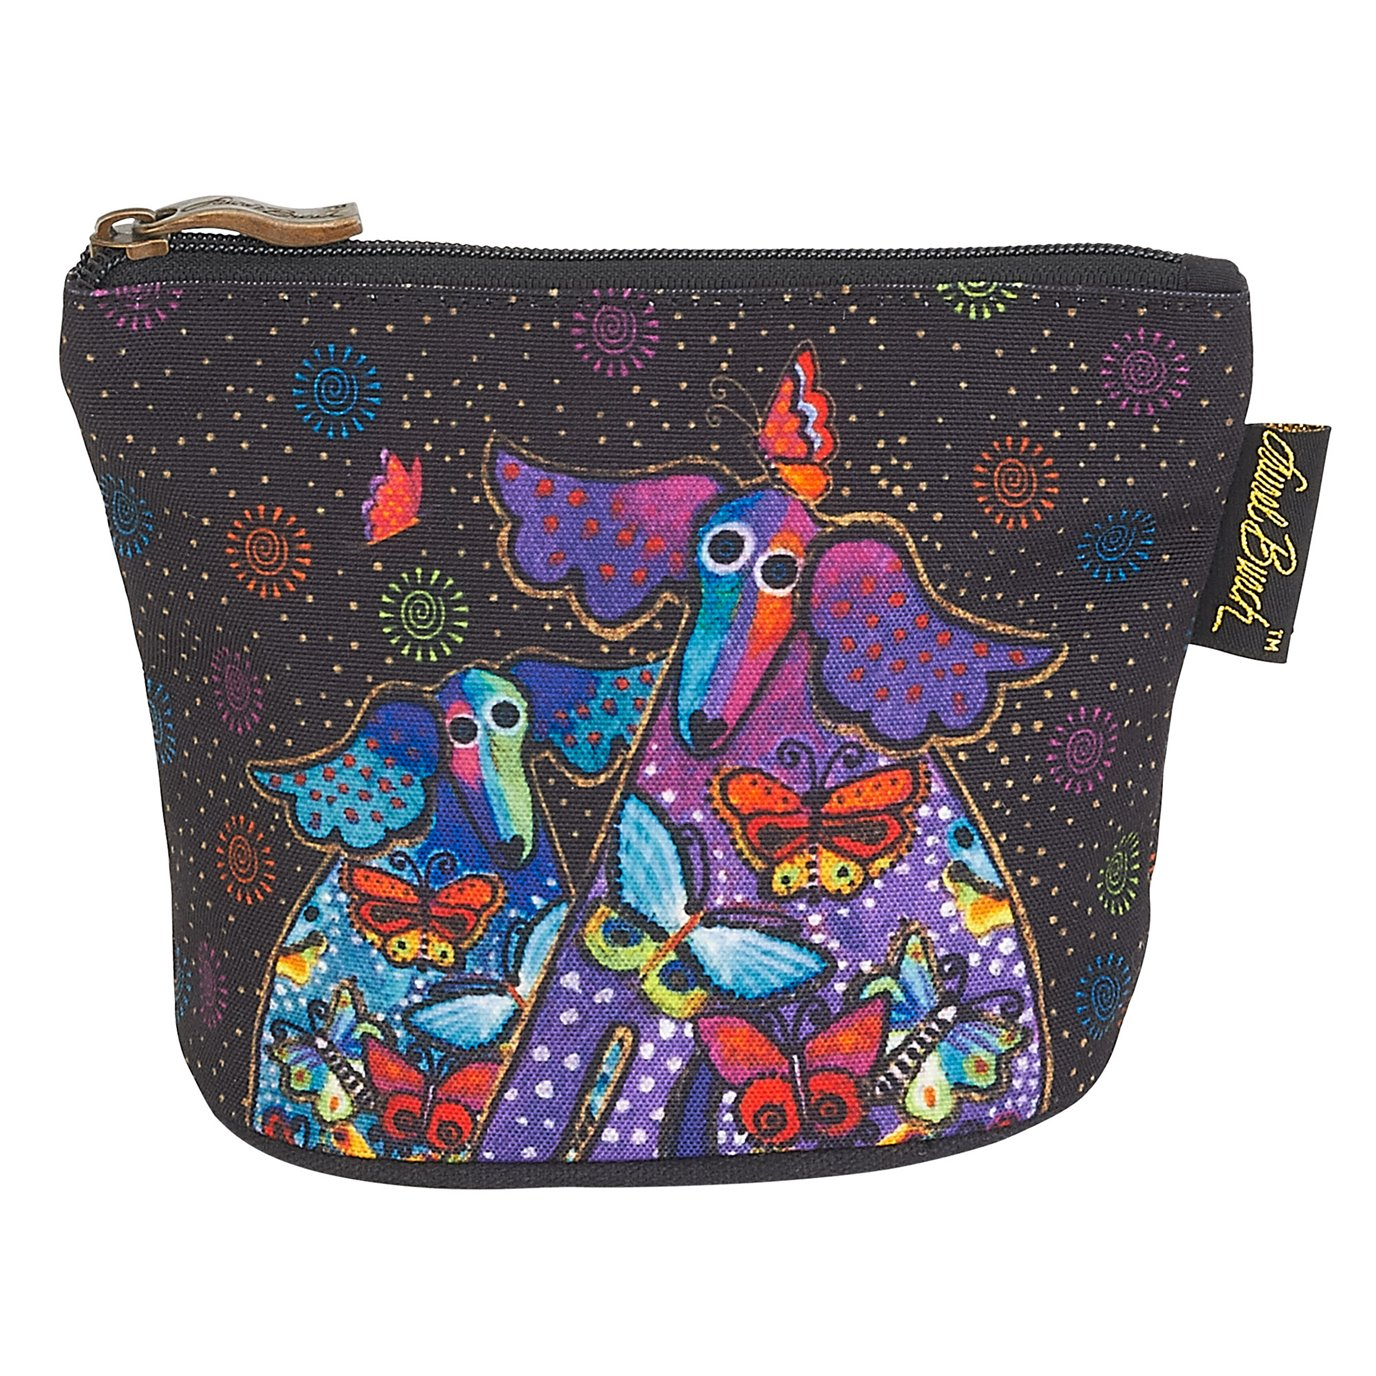 Laurel Burch Canine Friends Mini Cosmetic Bag - butterflies